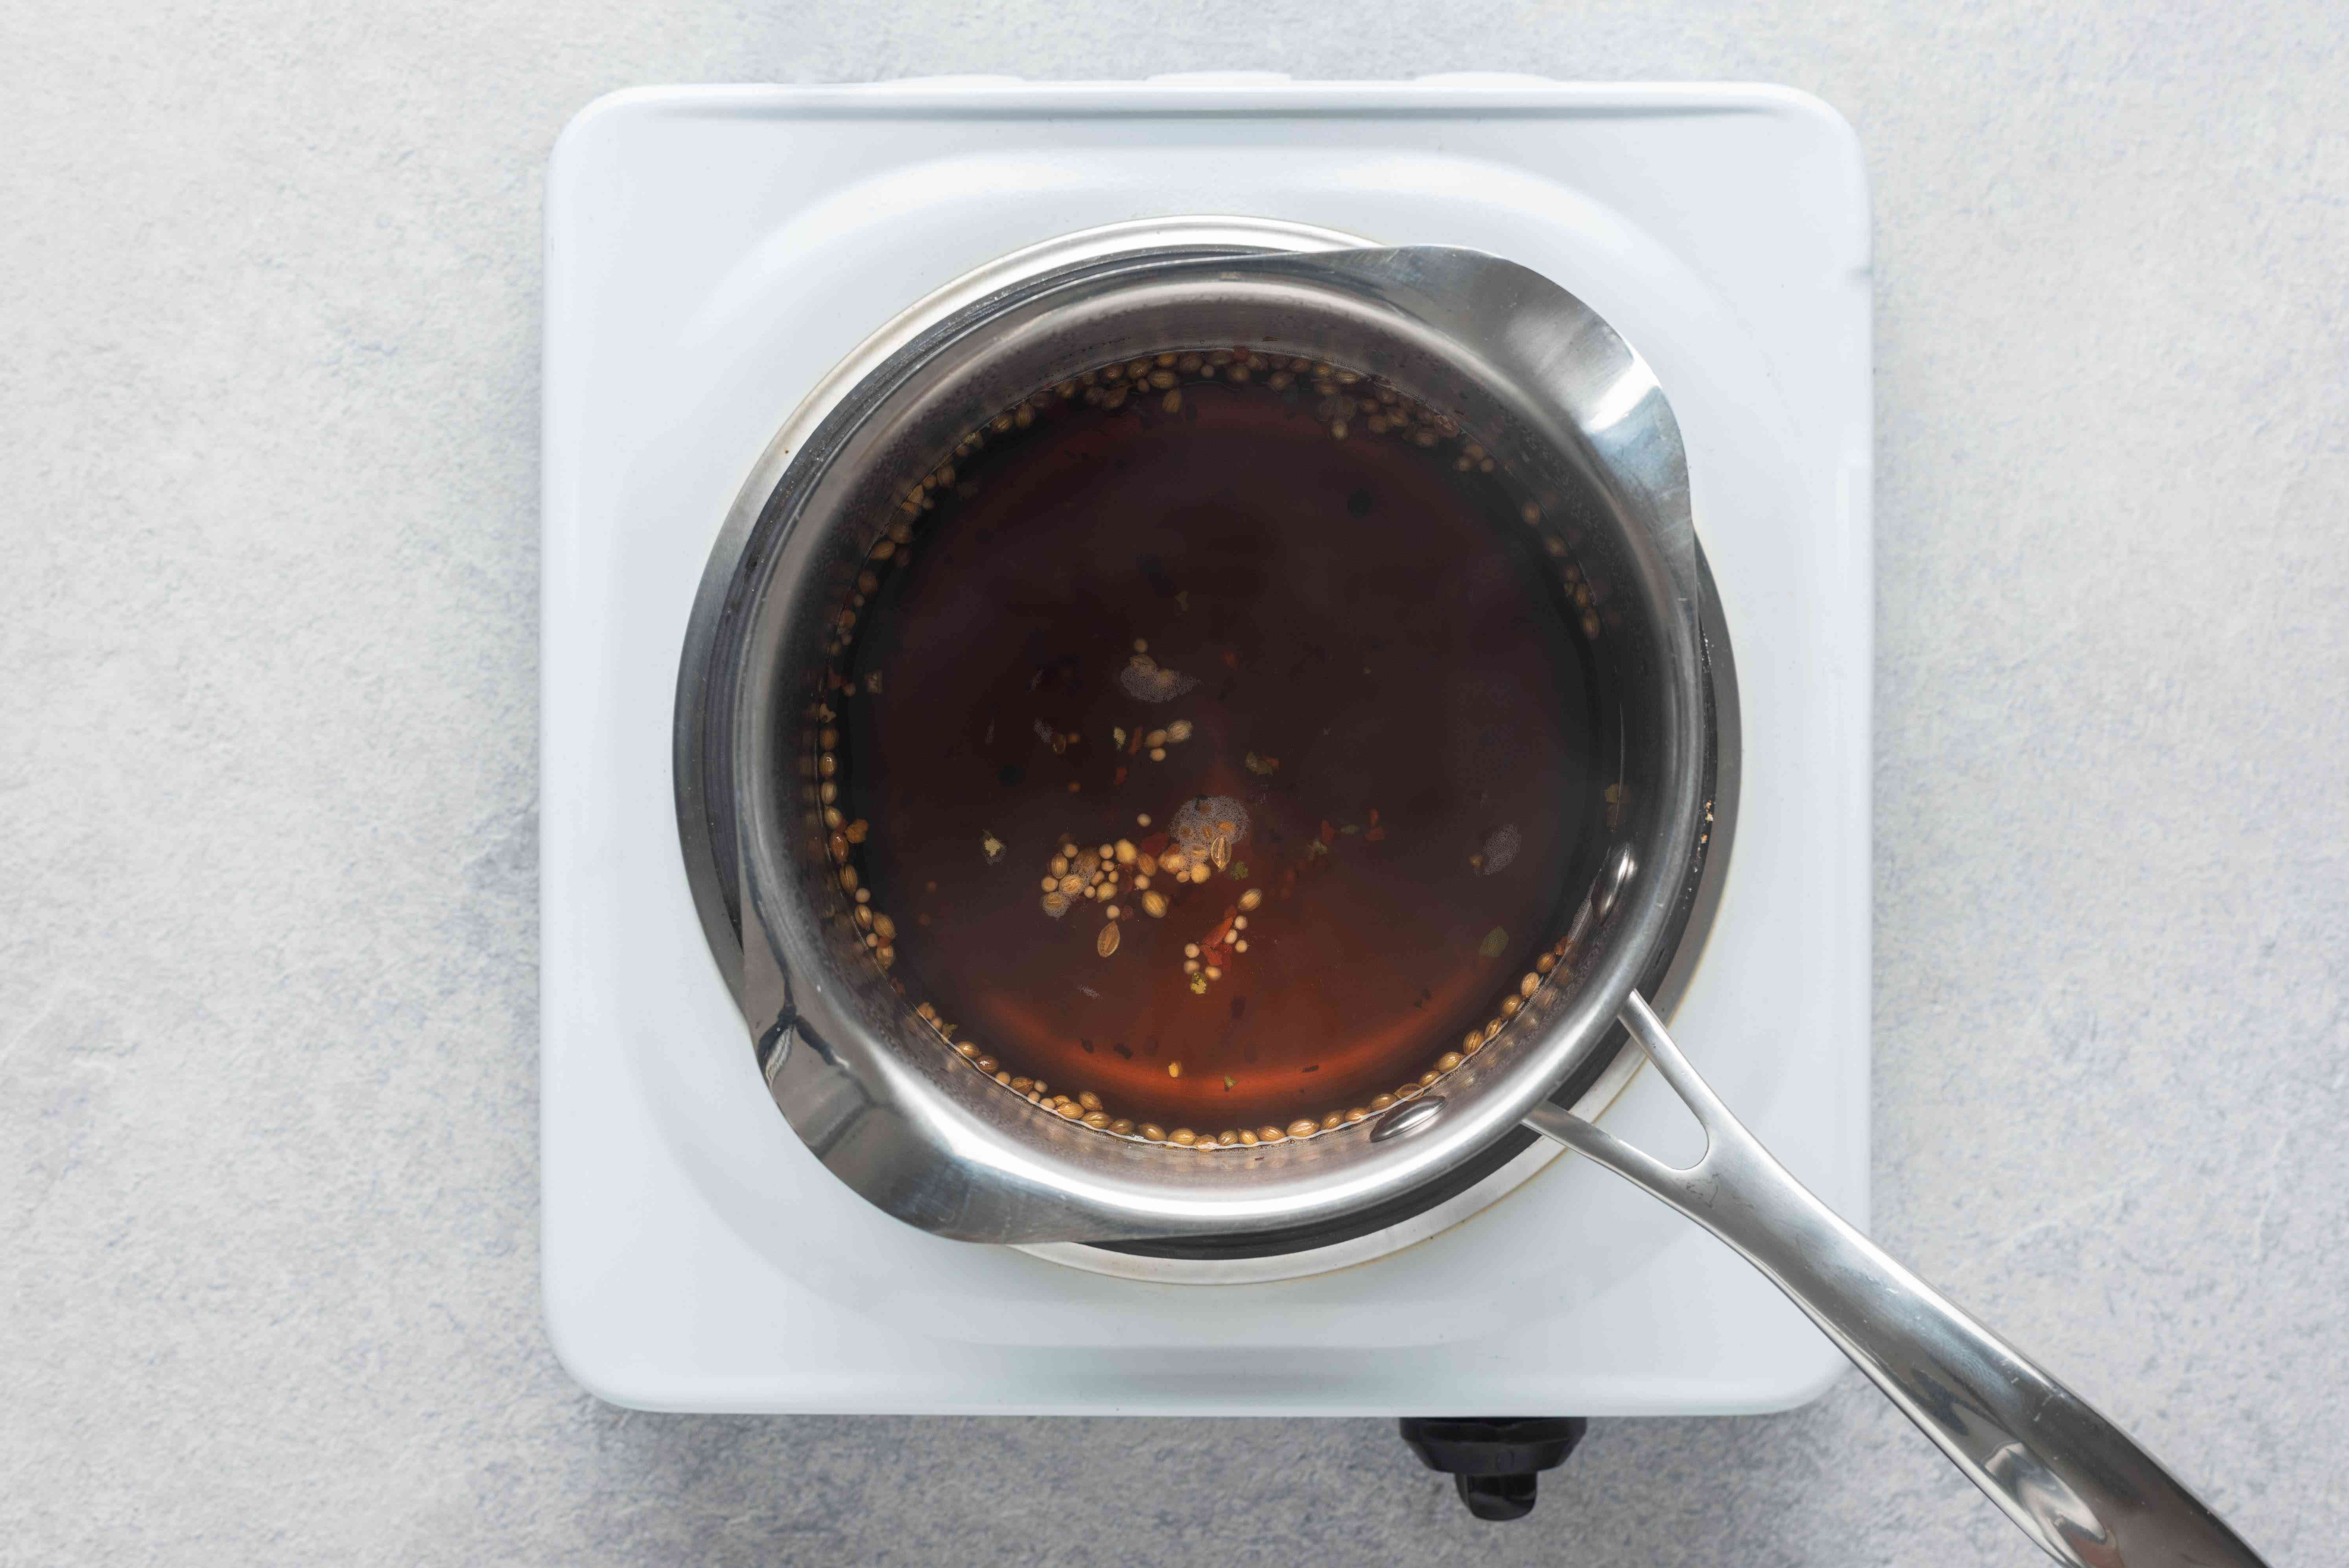 Vinegar and spice mixture cooking in a saucepan